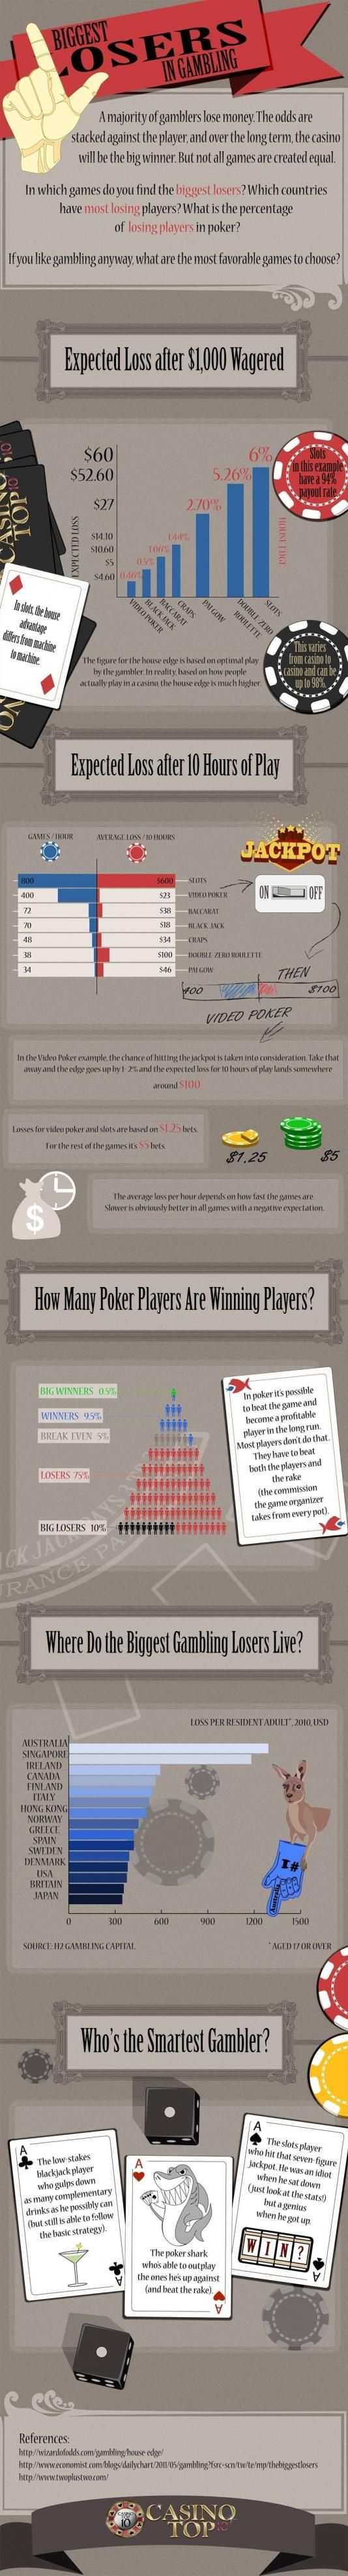 36 best Gambling Addiction images on Pinterest